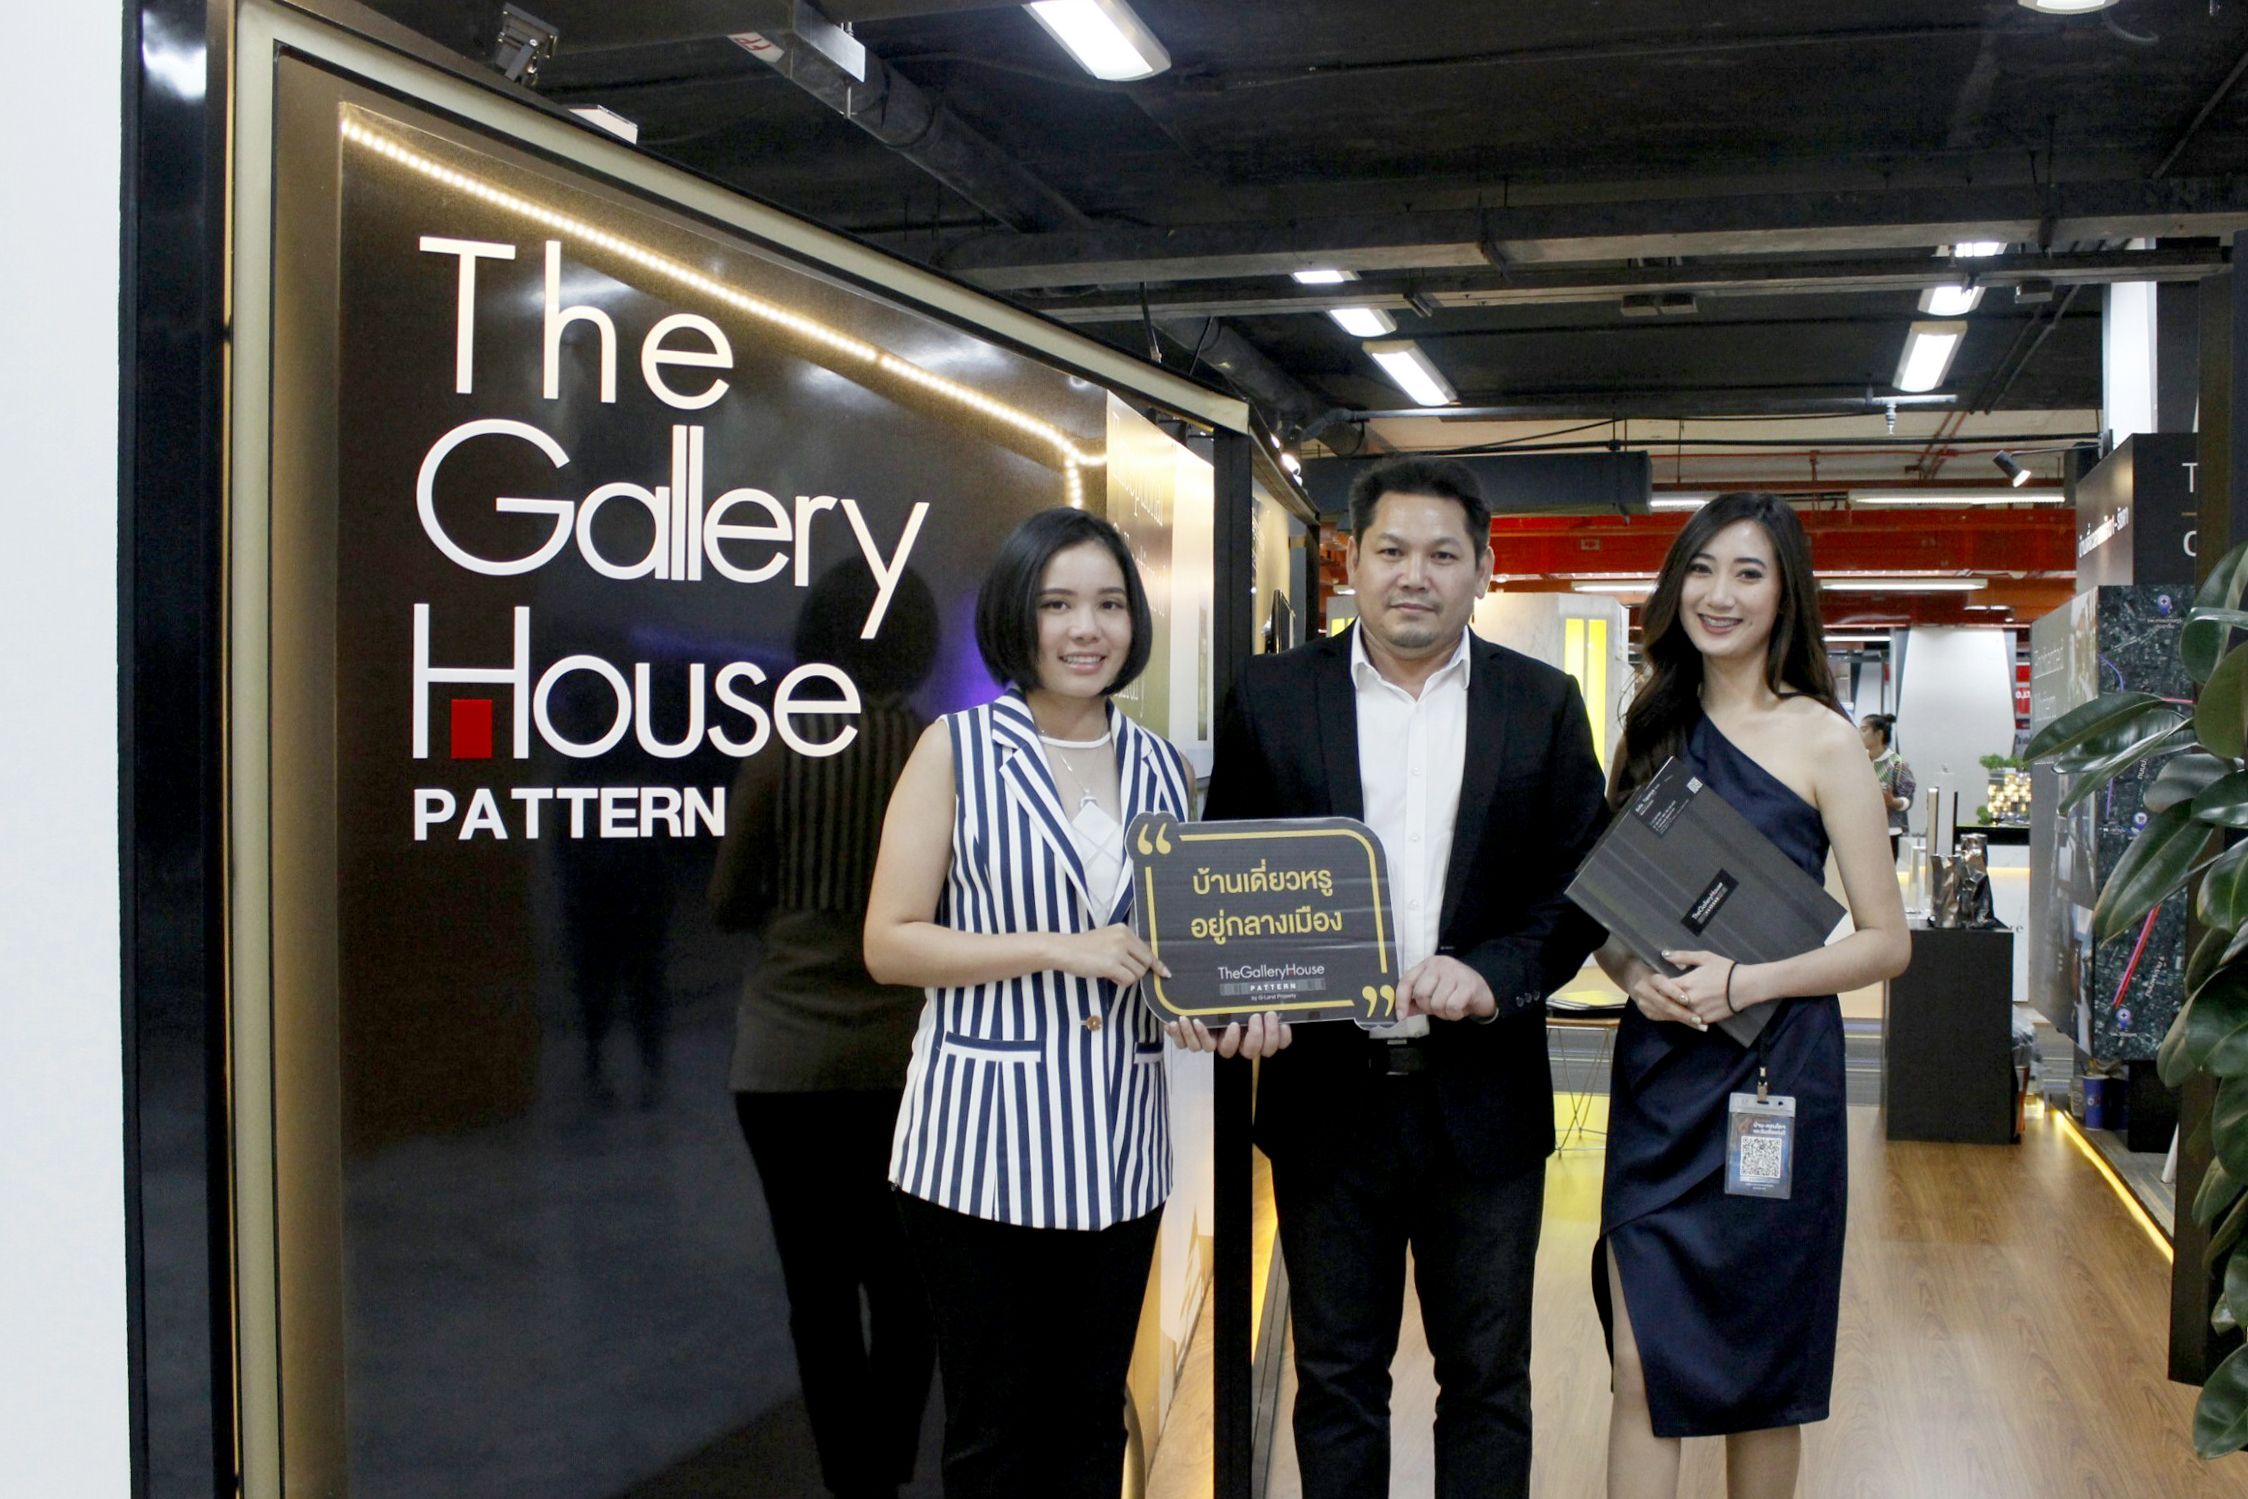 PZent ร่วมกับ The Gallery House Pattern by G Land Property นำเสนอ Life Style ที่ทันสมัย ภายในงาน Home Buyer Expo 2018